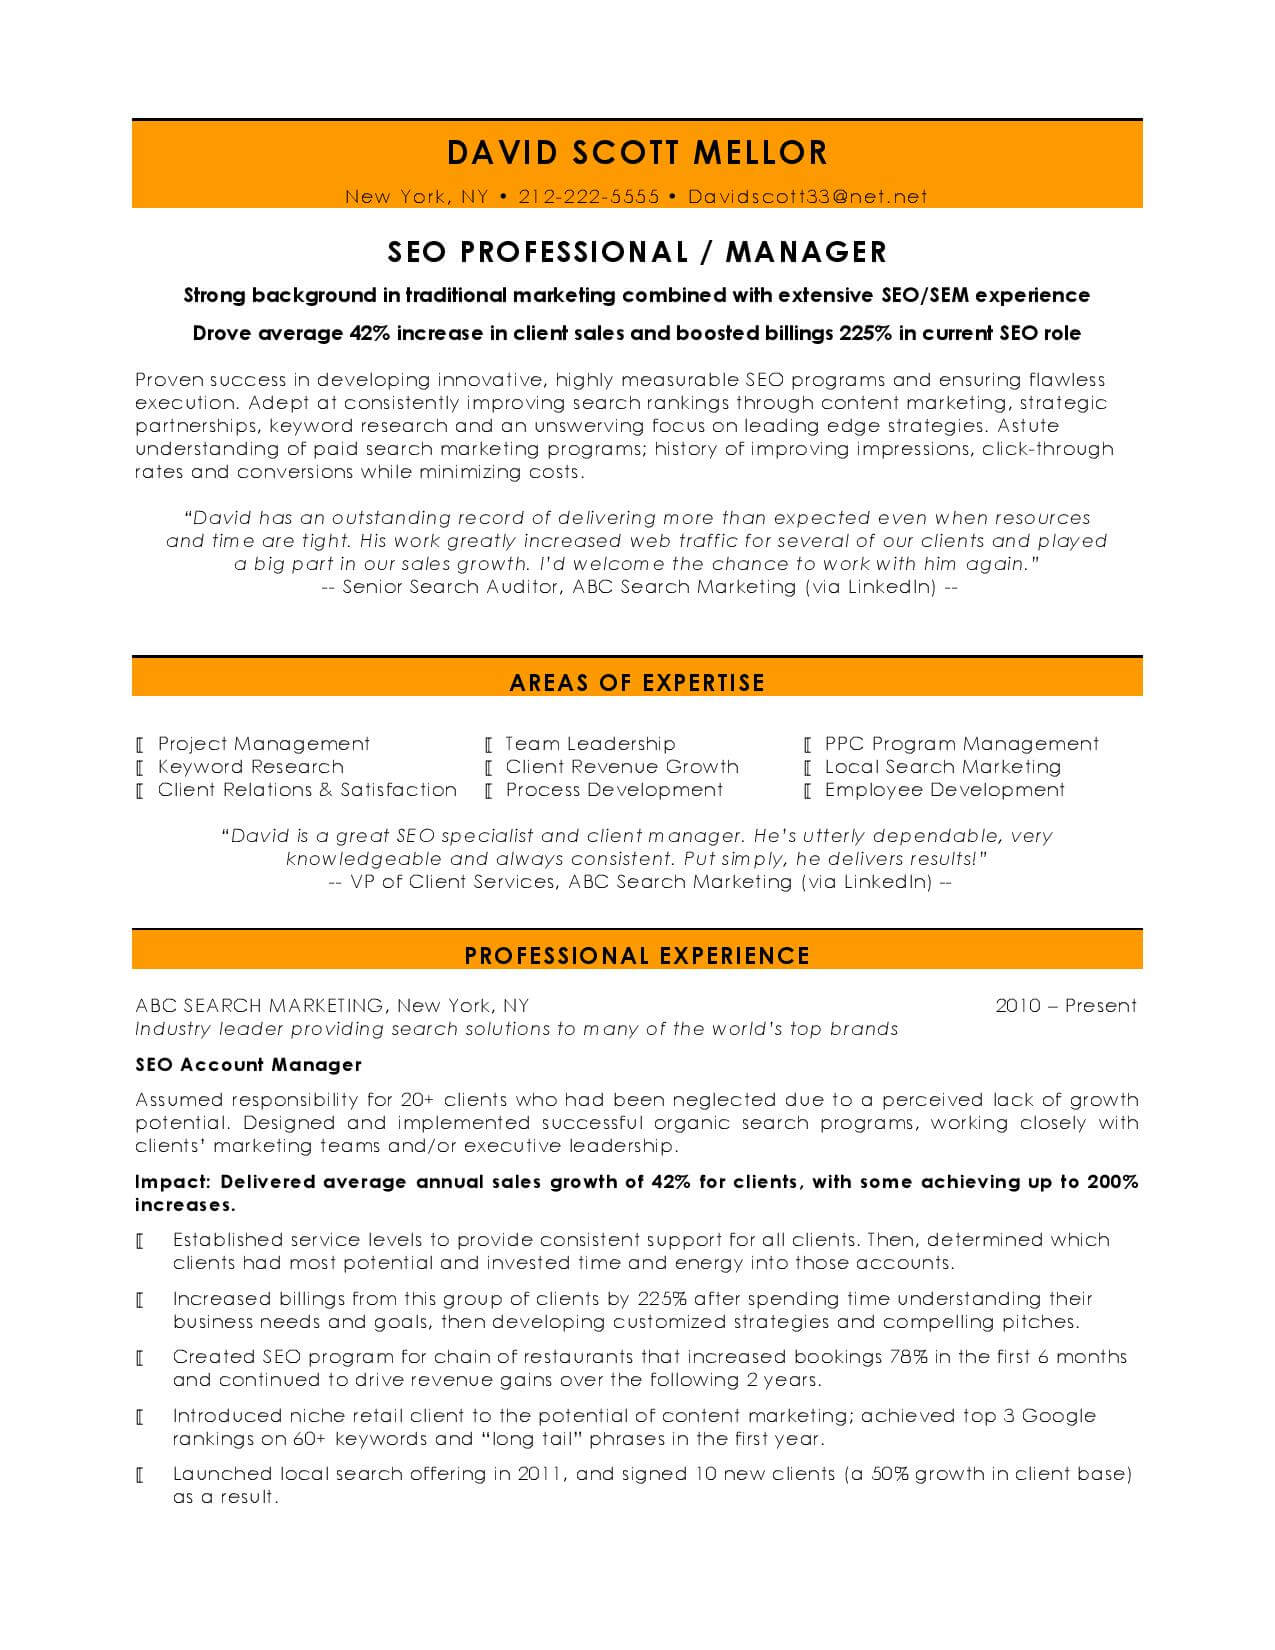 10 Best Digital Marketing CV Examples & Templates